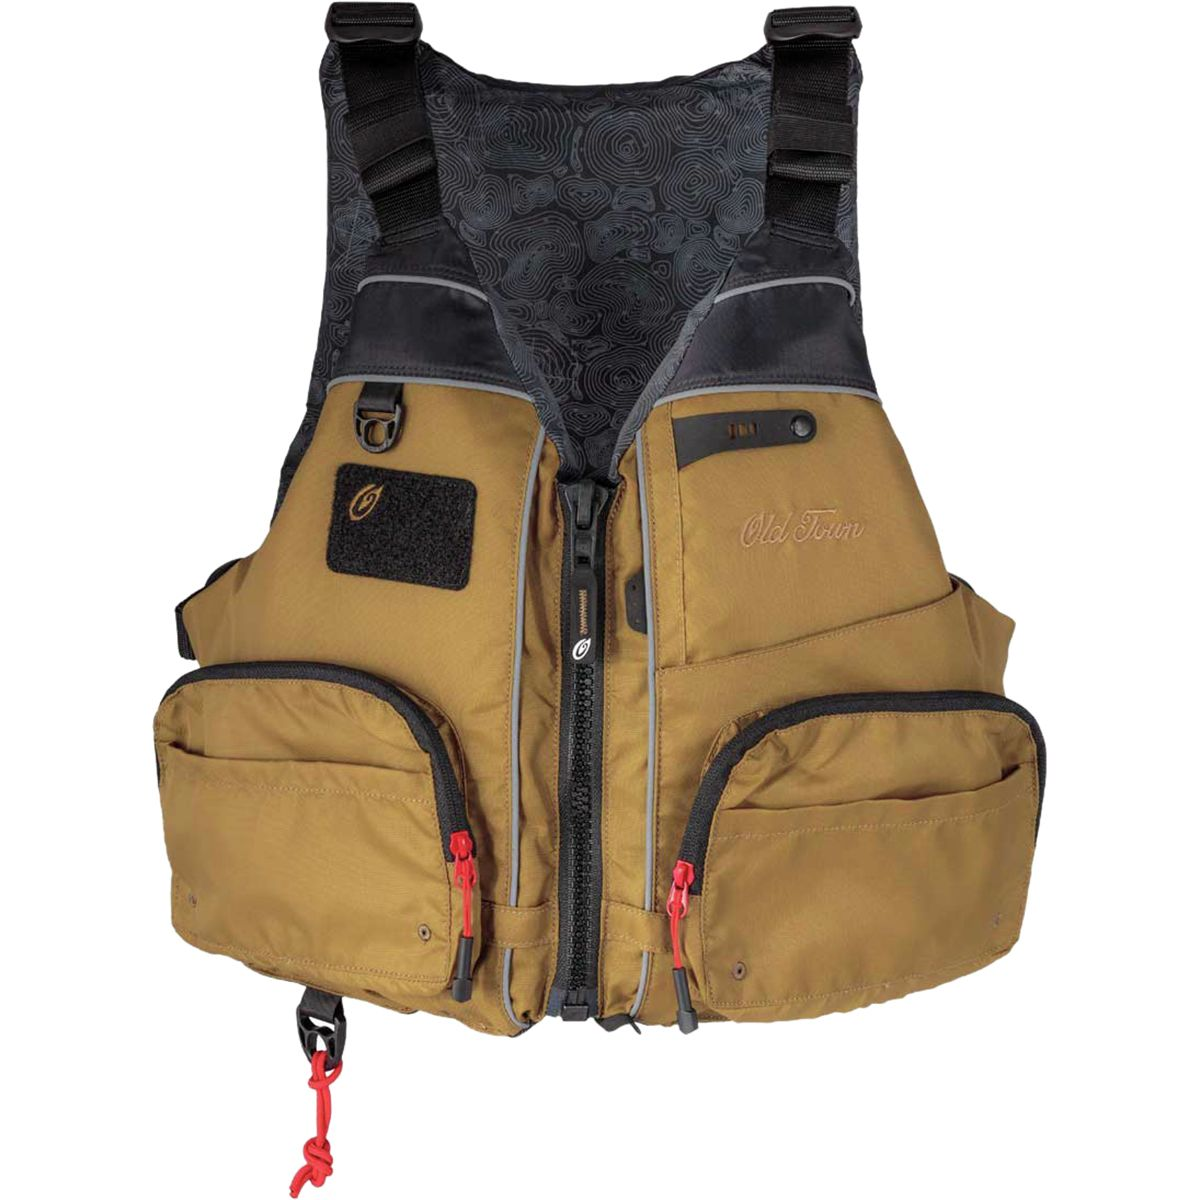 photo: Old Town Treble Angler life jacket/pfd